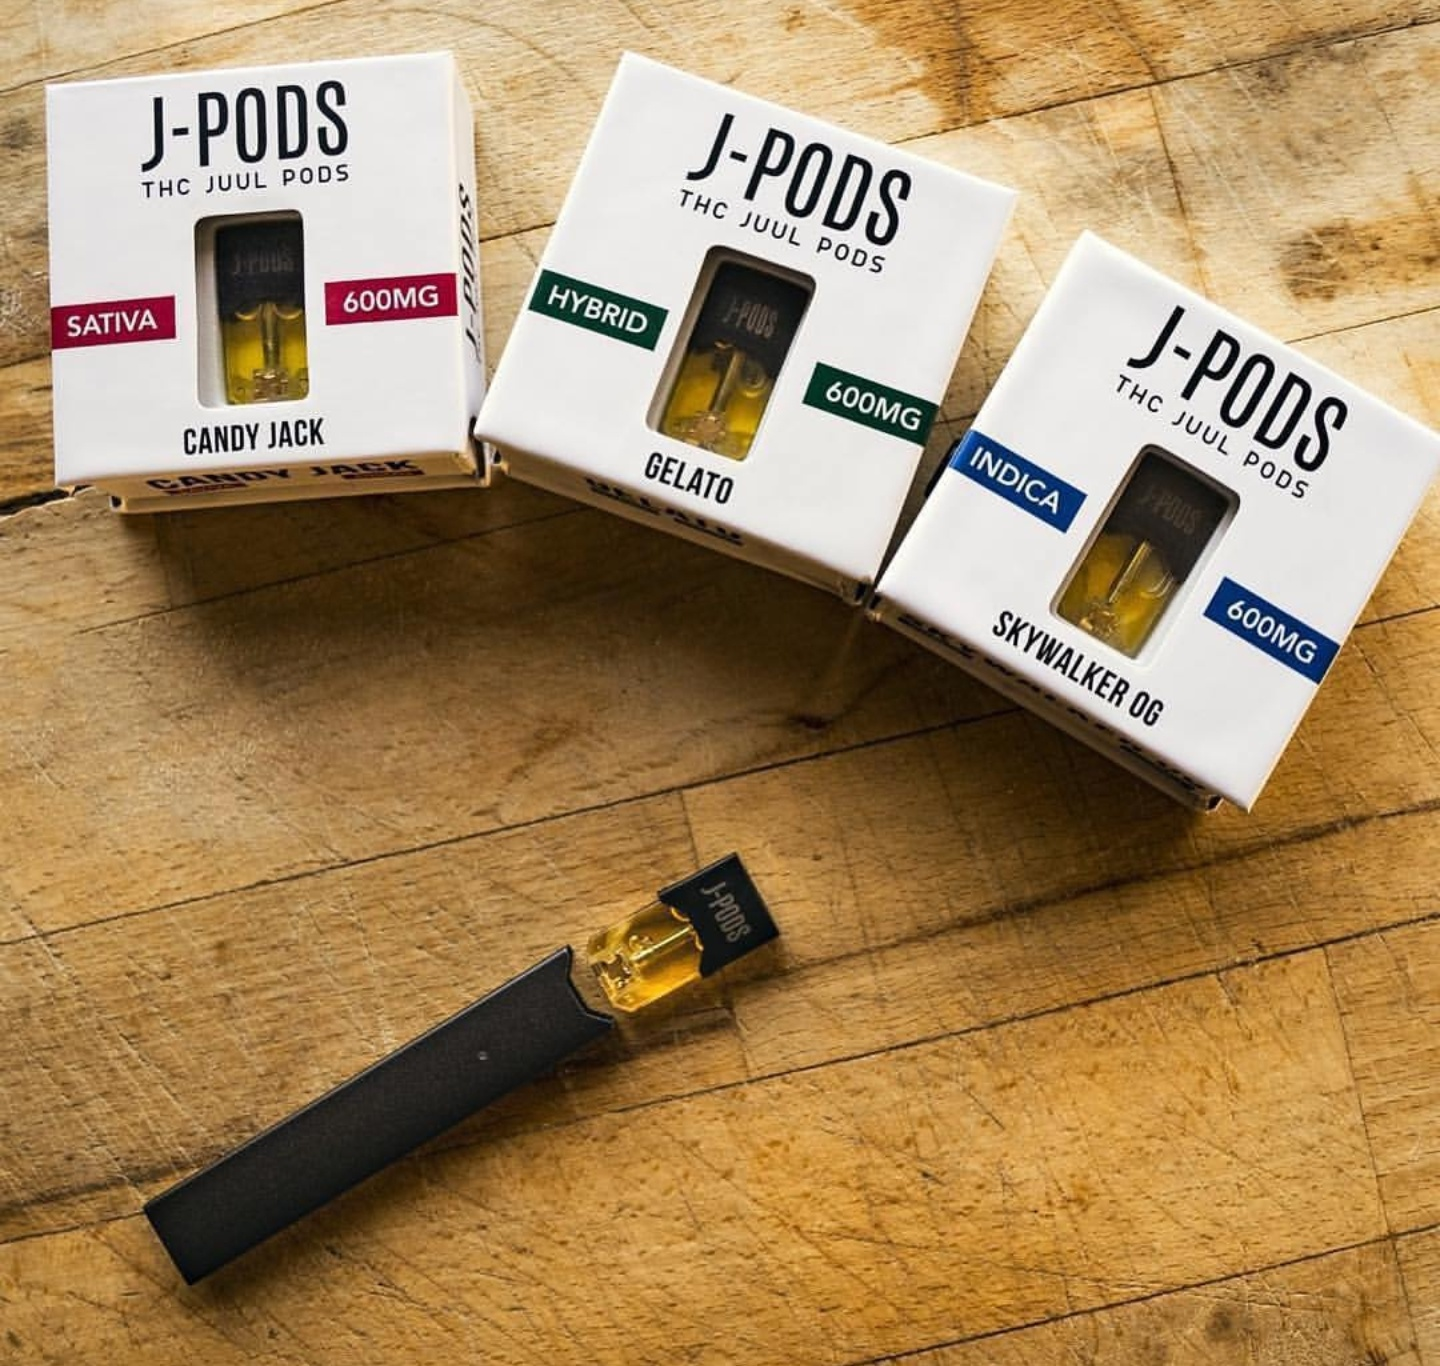 Where to Buy Juul Pods Online Buy Juul Pods Europe Buy Juul Pods Online Buy weed Europe Buy Cannabis Online Europe Juul Pods for Sale